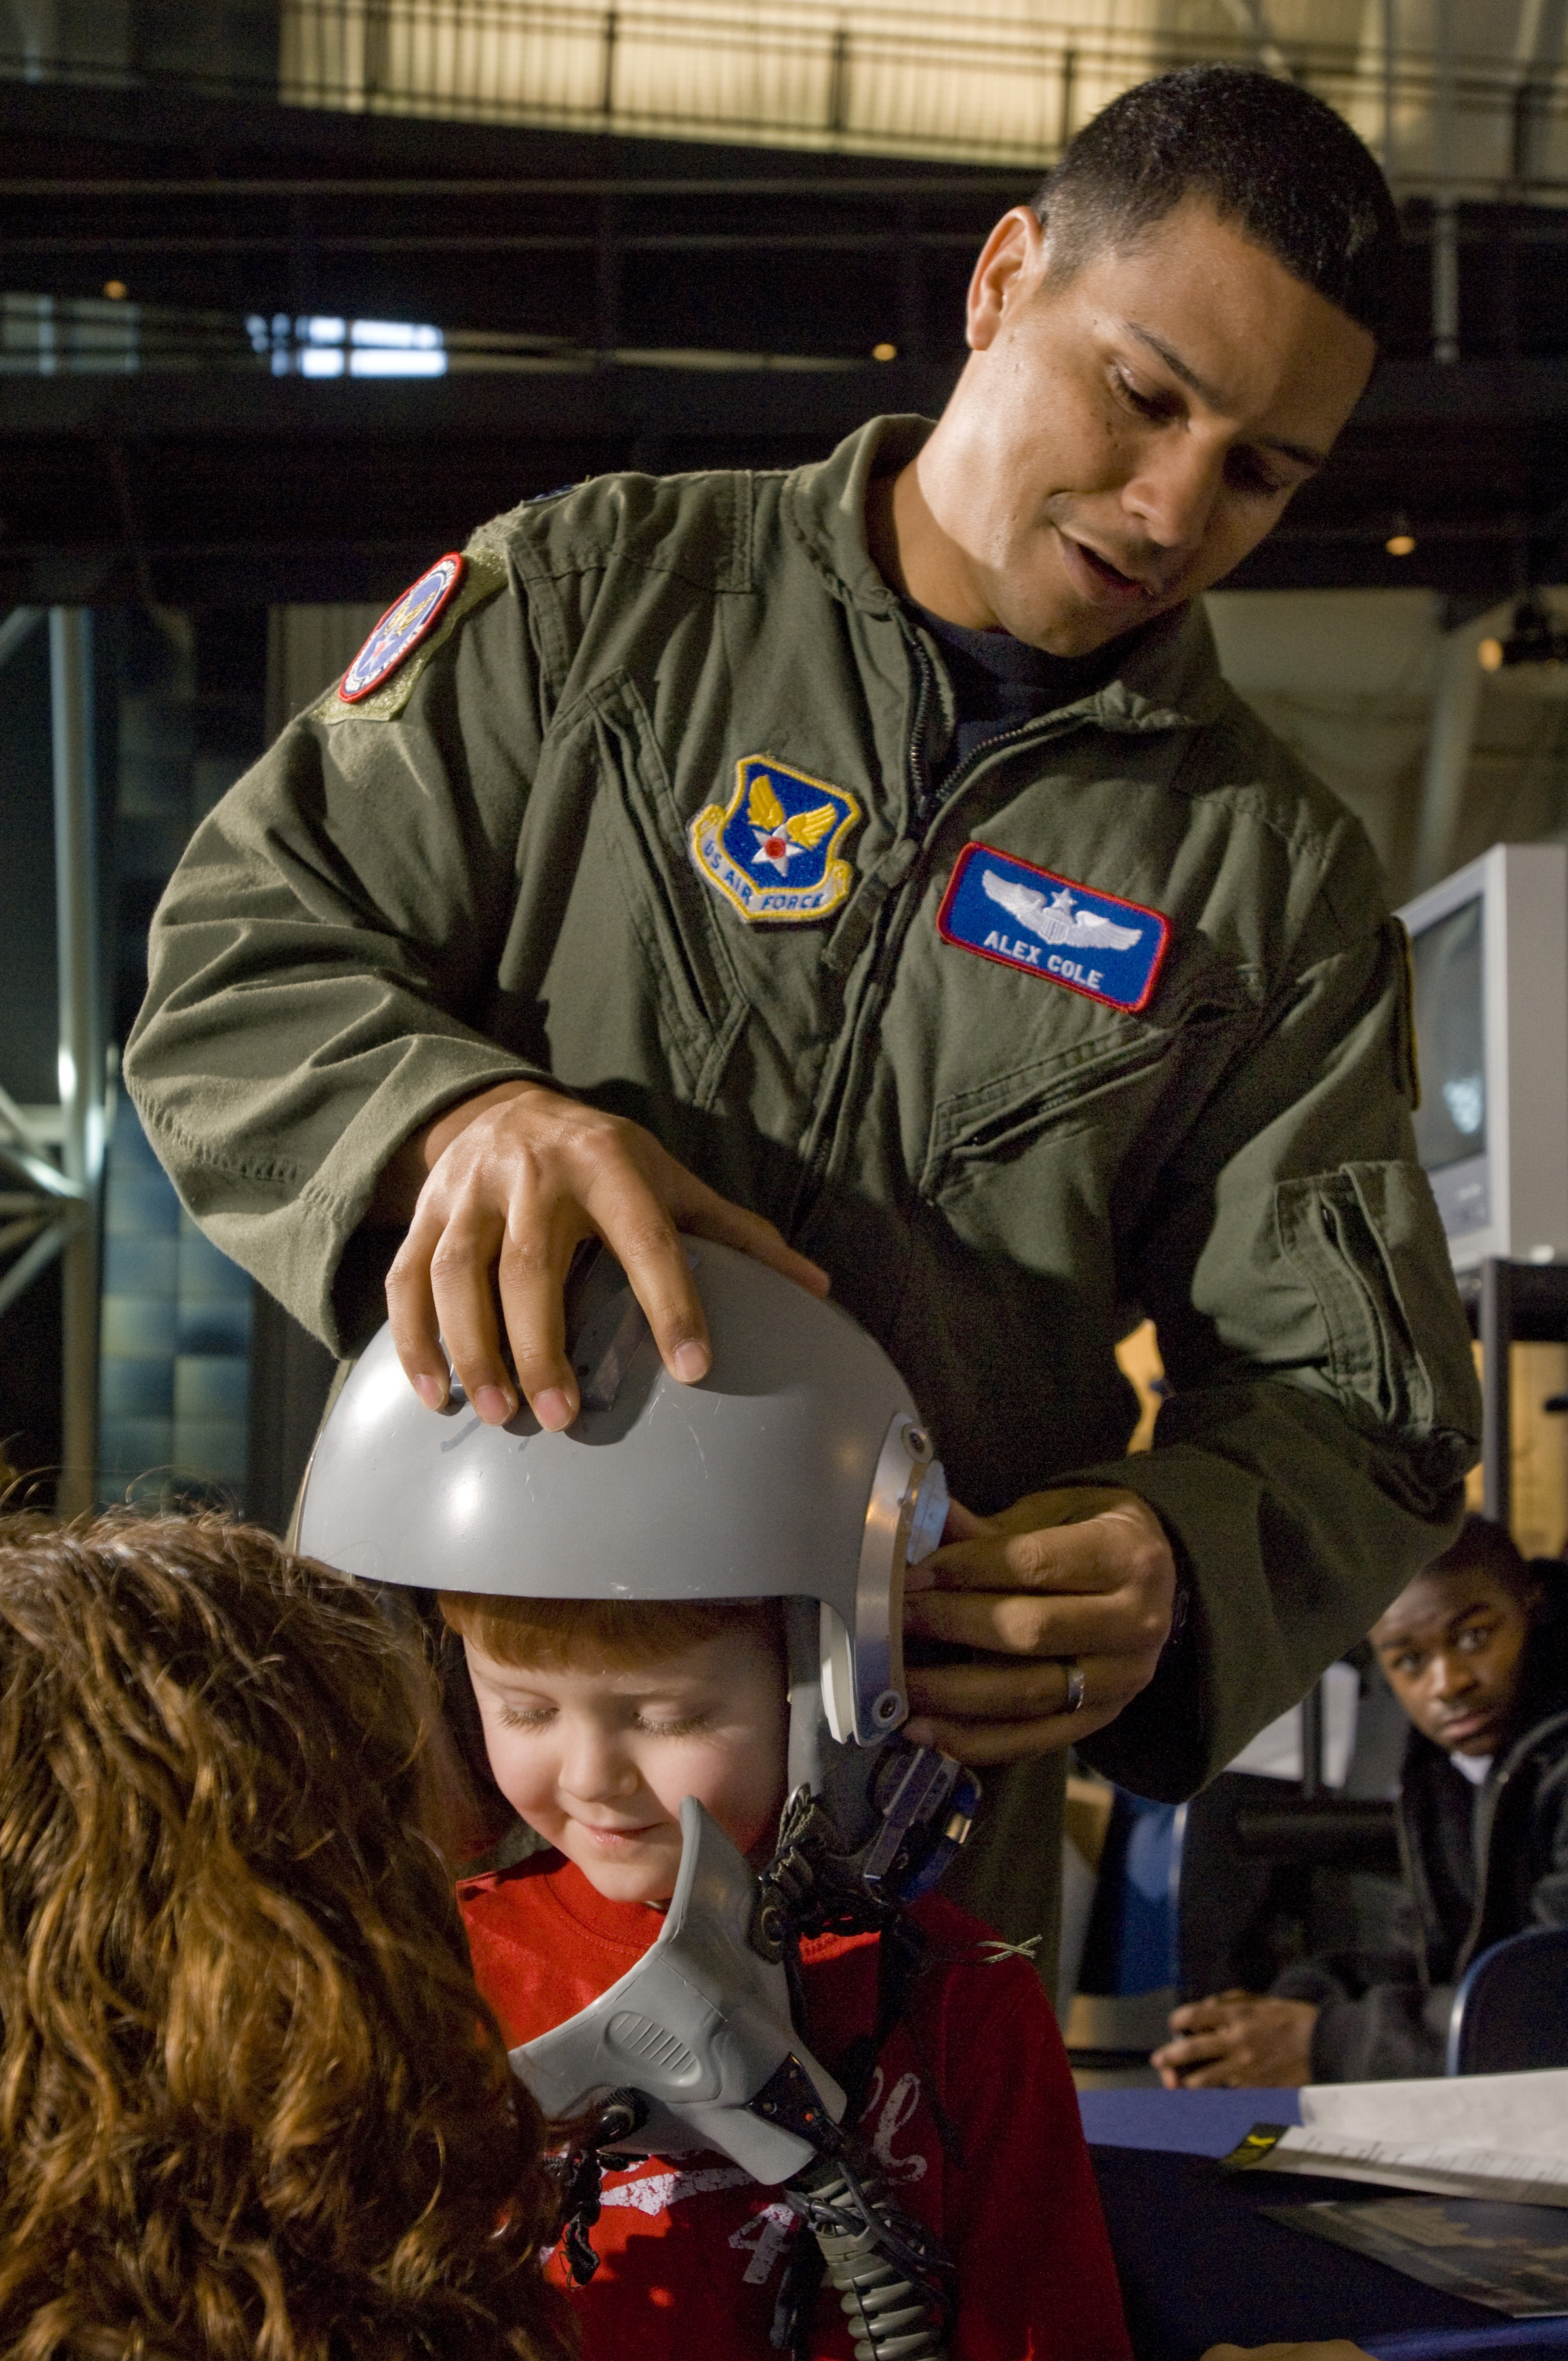 Young Visitor at the Annual Become A Pilot Day